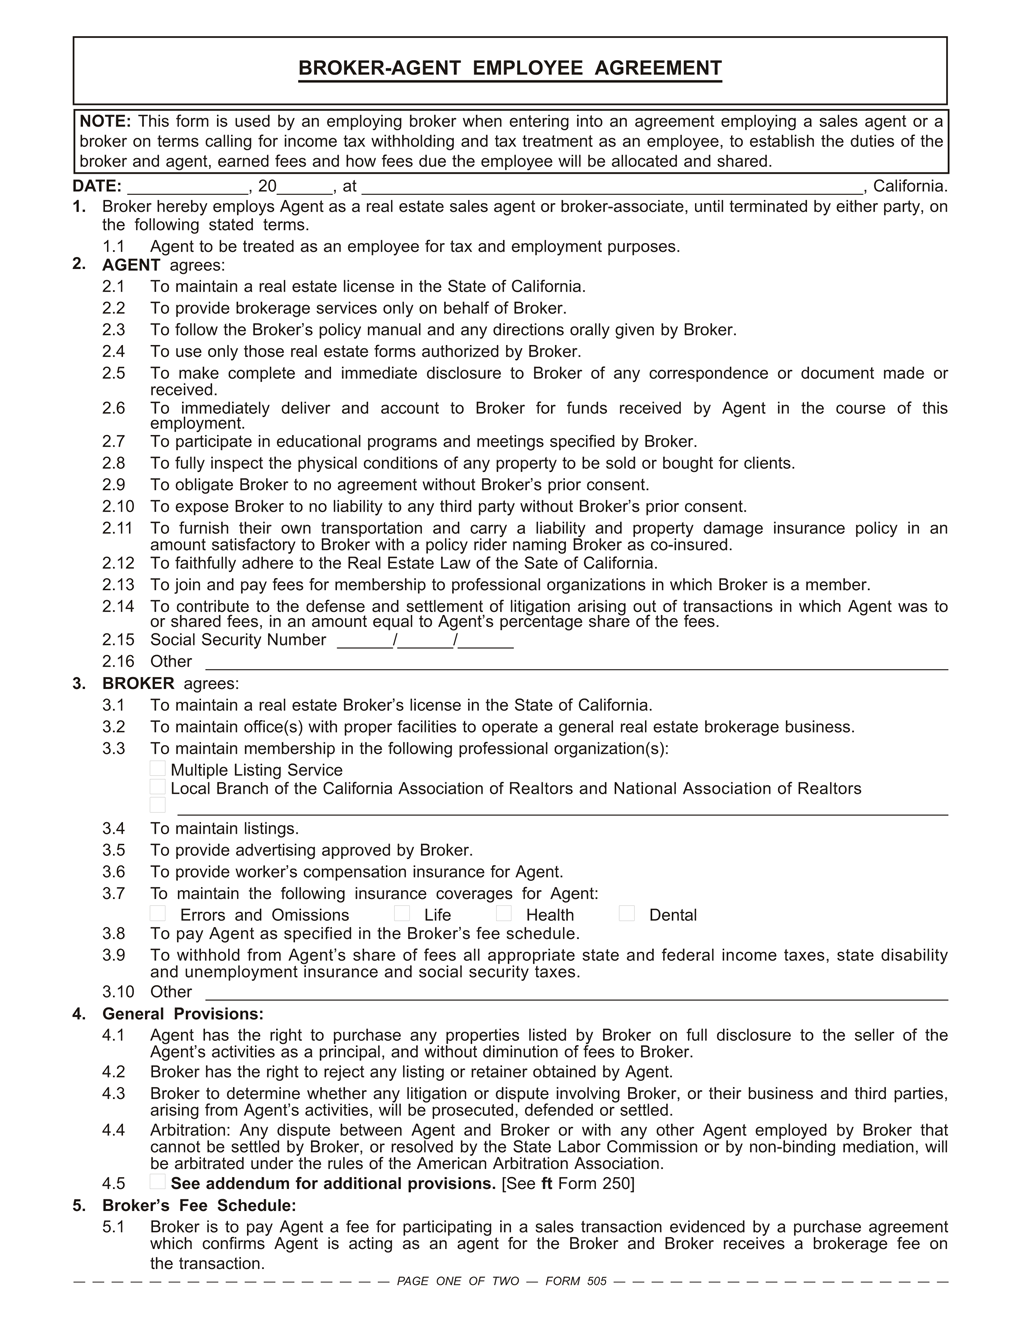 Broker agent employee agreement rpi form 505 first tuesday journal licensed employees of the broker pronofoot35fo Gallery